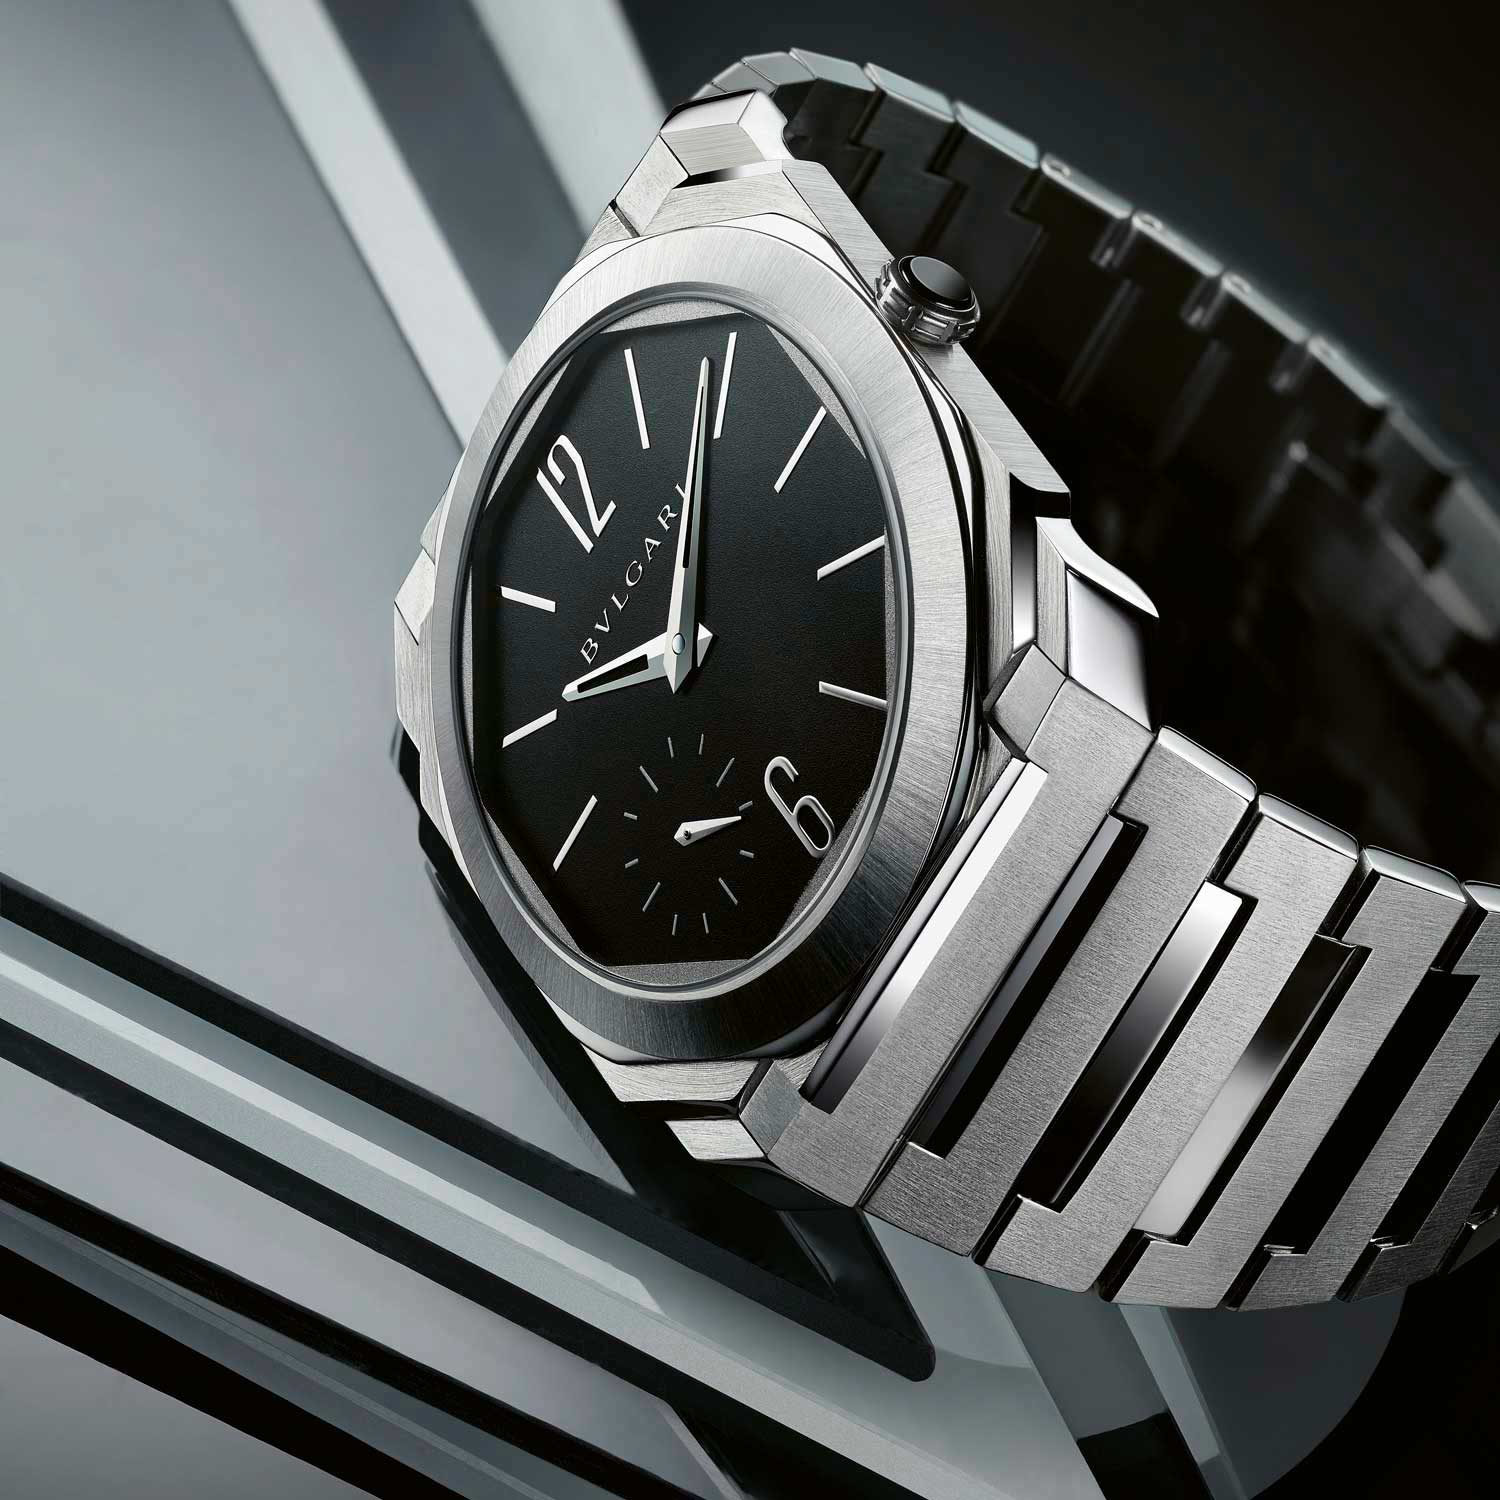 The Bvlgari Octo Finissimo is a contemporary icon in the integrated bracelet, sports chic watch category.